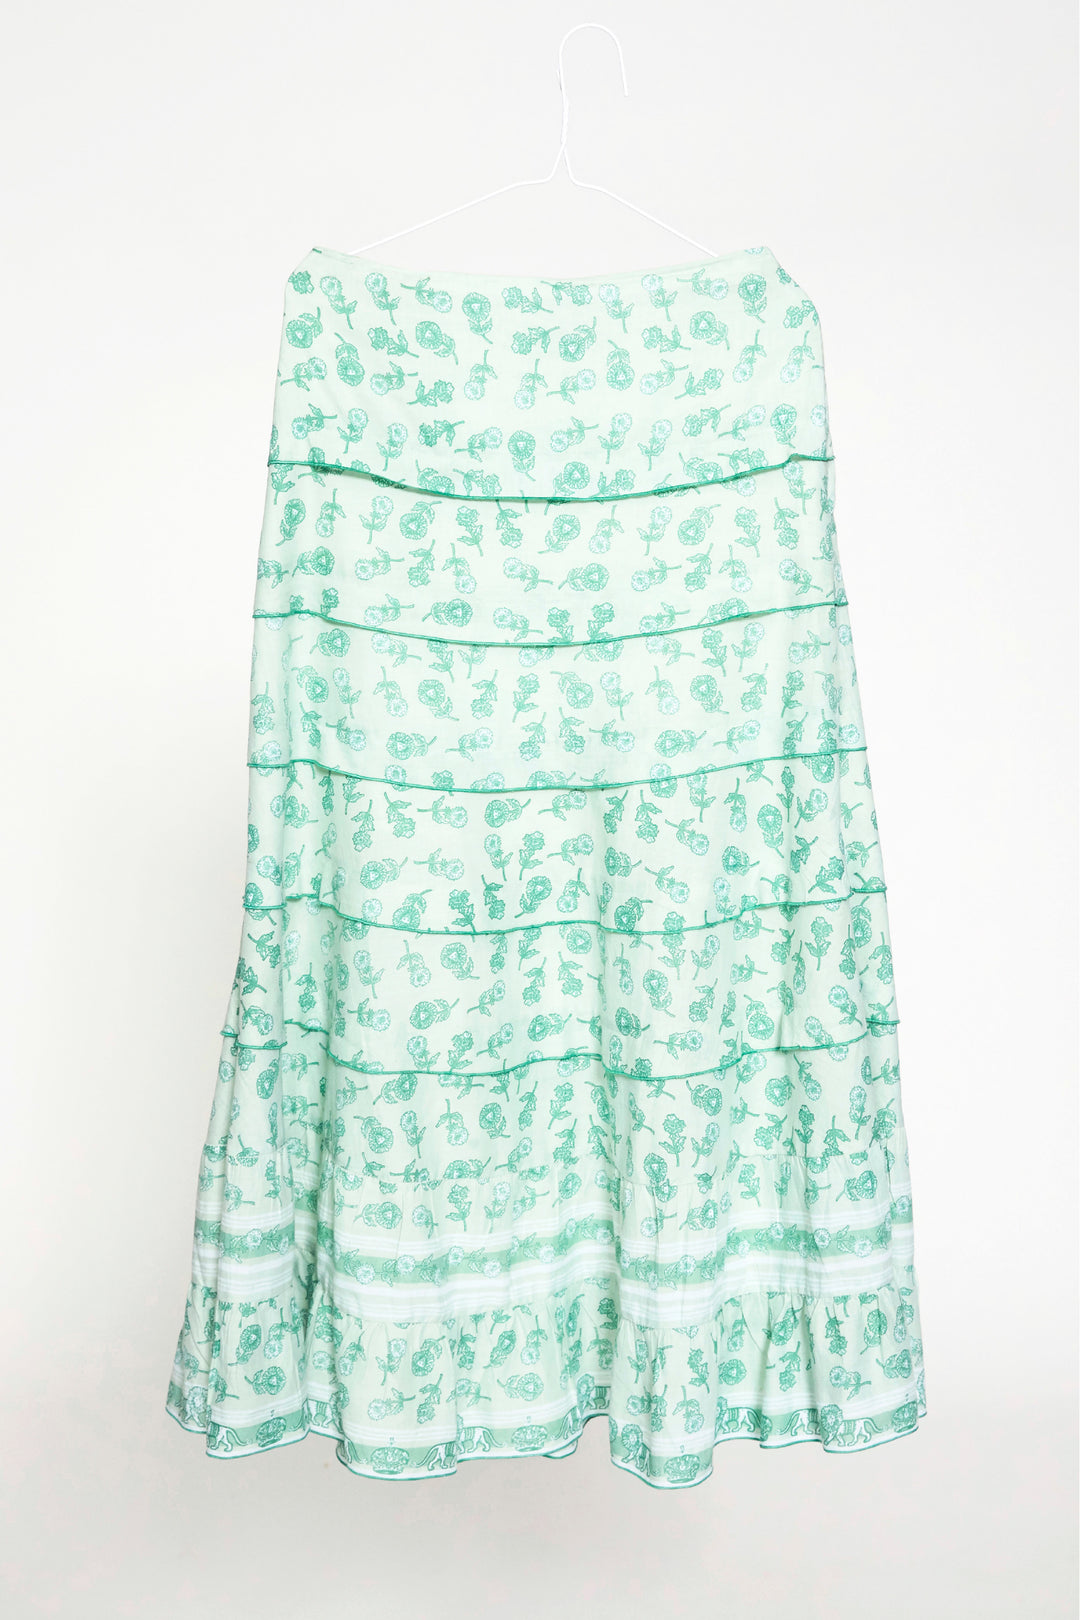 mint green dandylion cotton ruffle skirt foundling